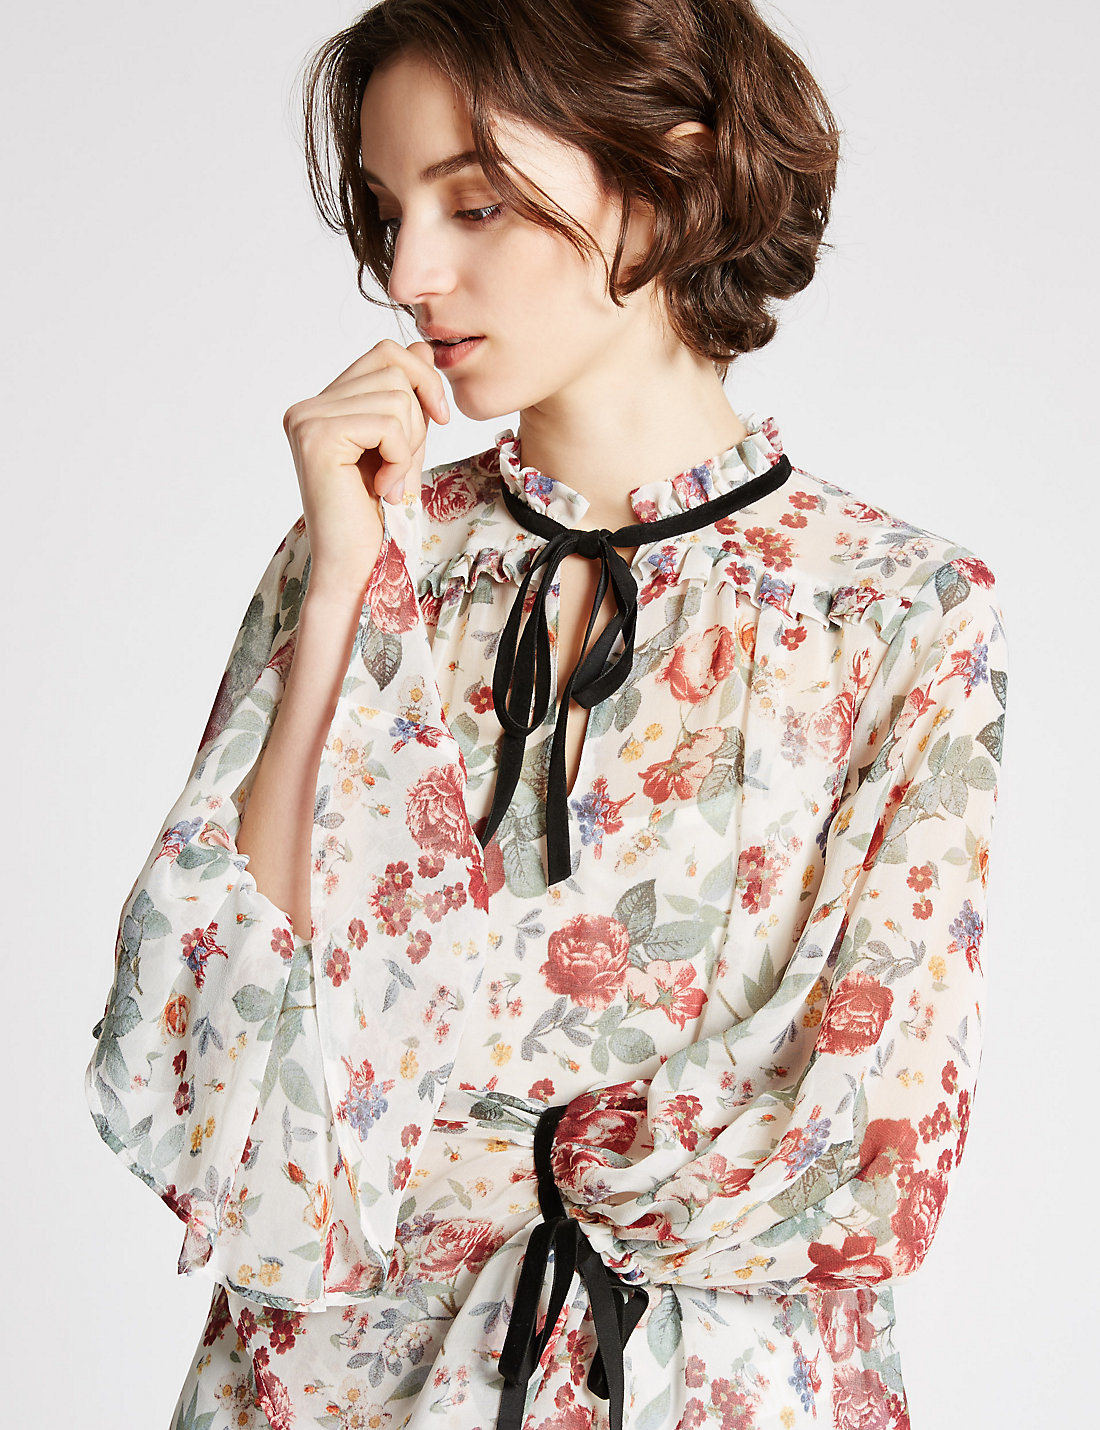 High Quality Vintage Floral Print Long Sleeve Blouse